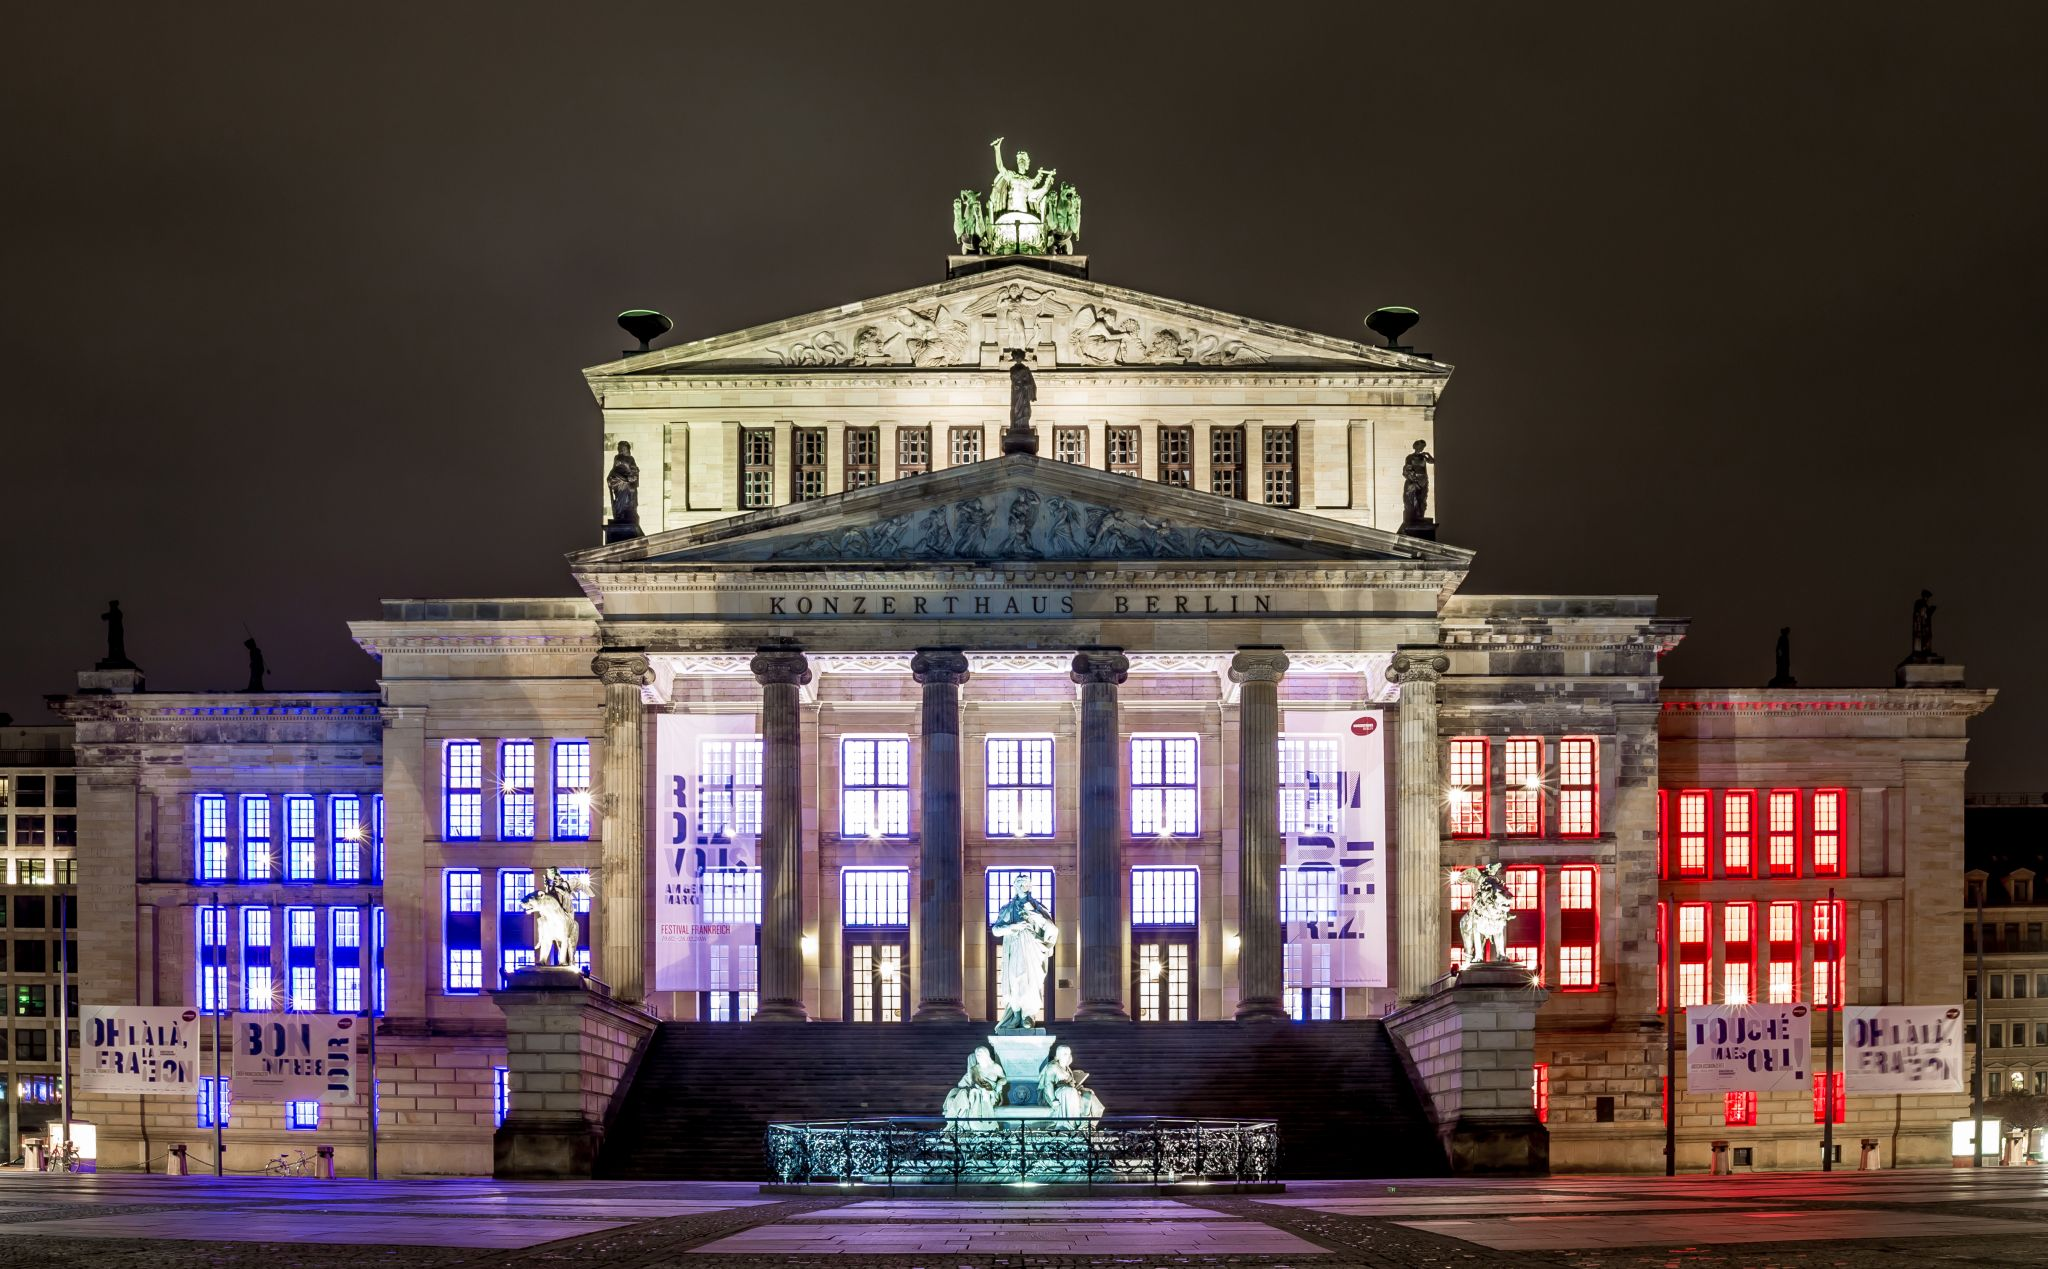 Konzerthaus Berlin, Germany